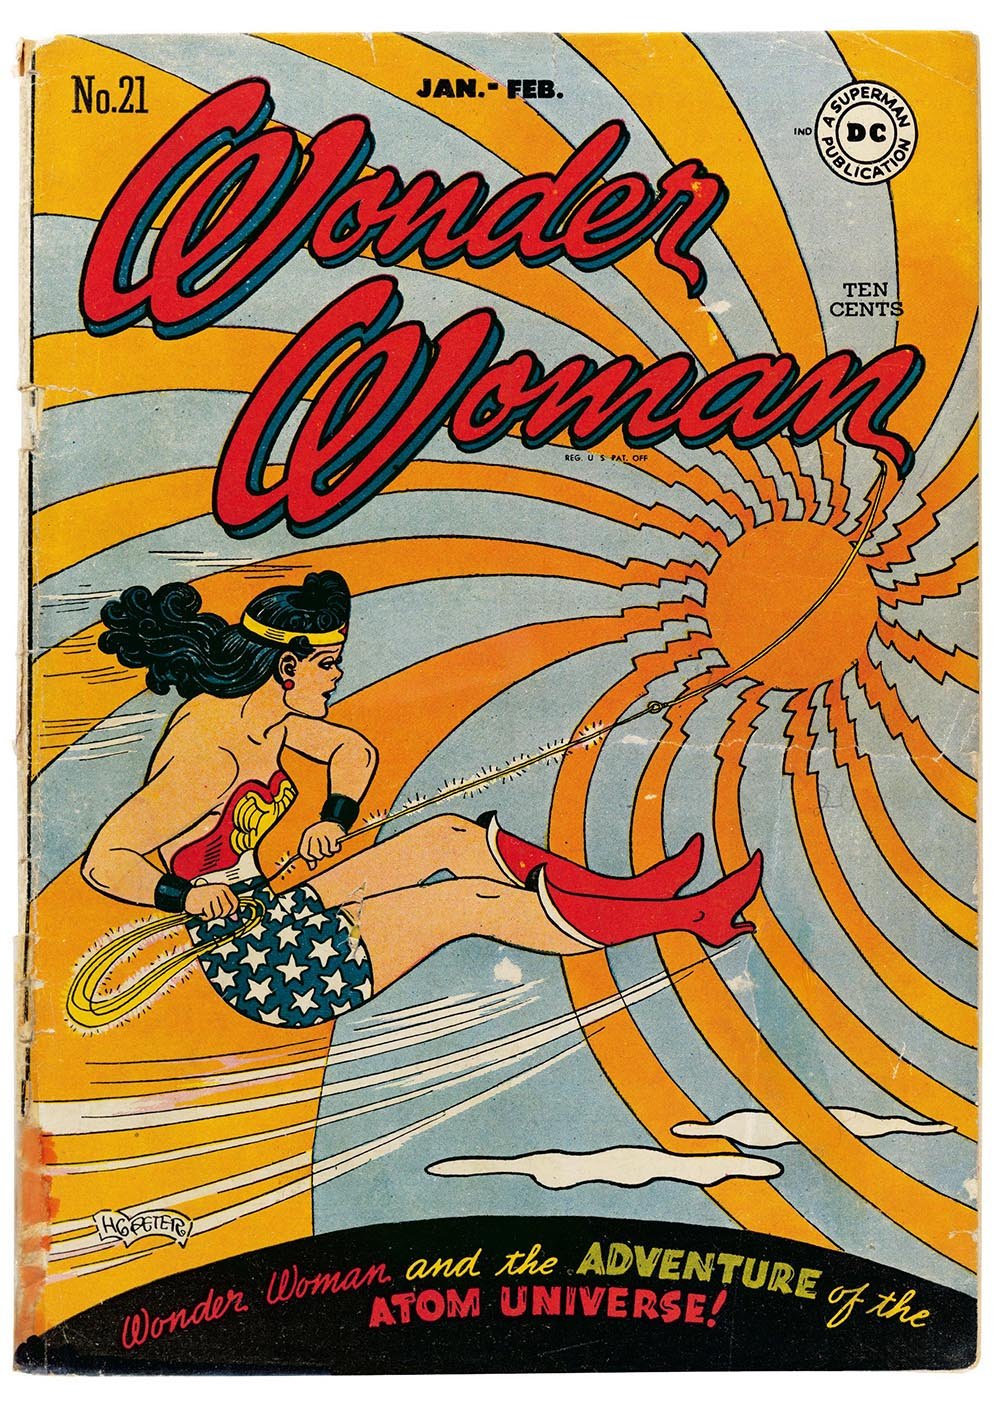 Wonder Woman No. 21 cover art by HG Peter,  January–February 1947